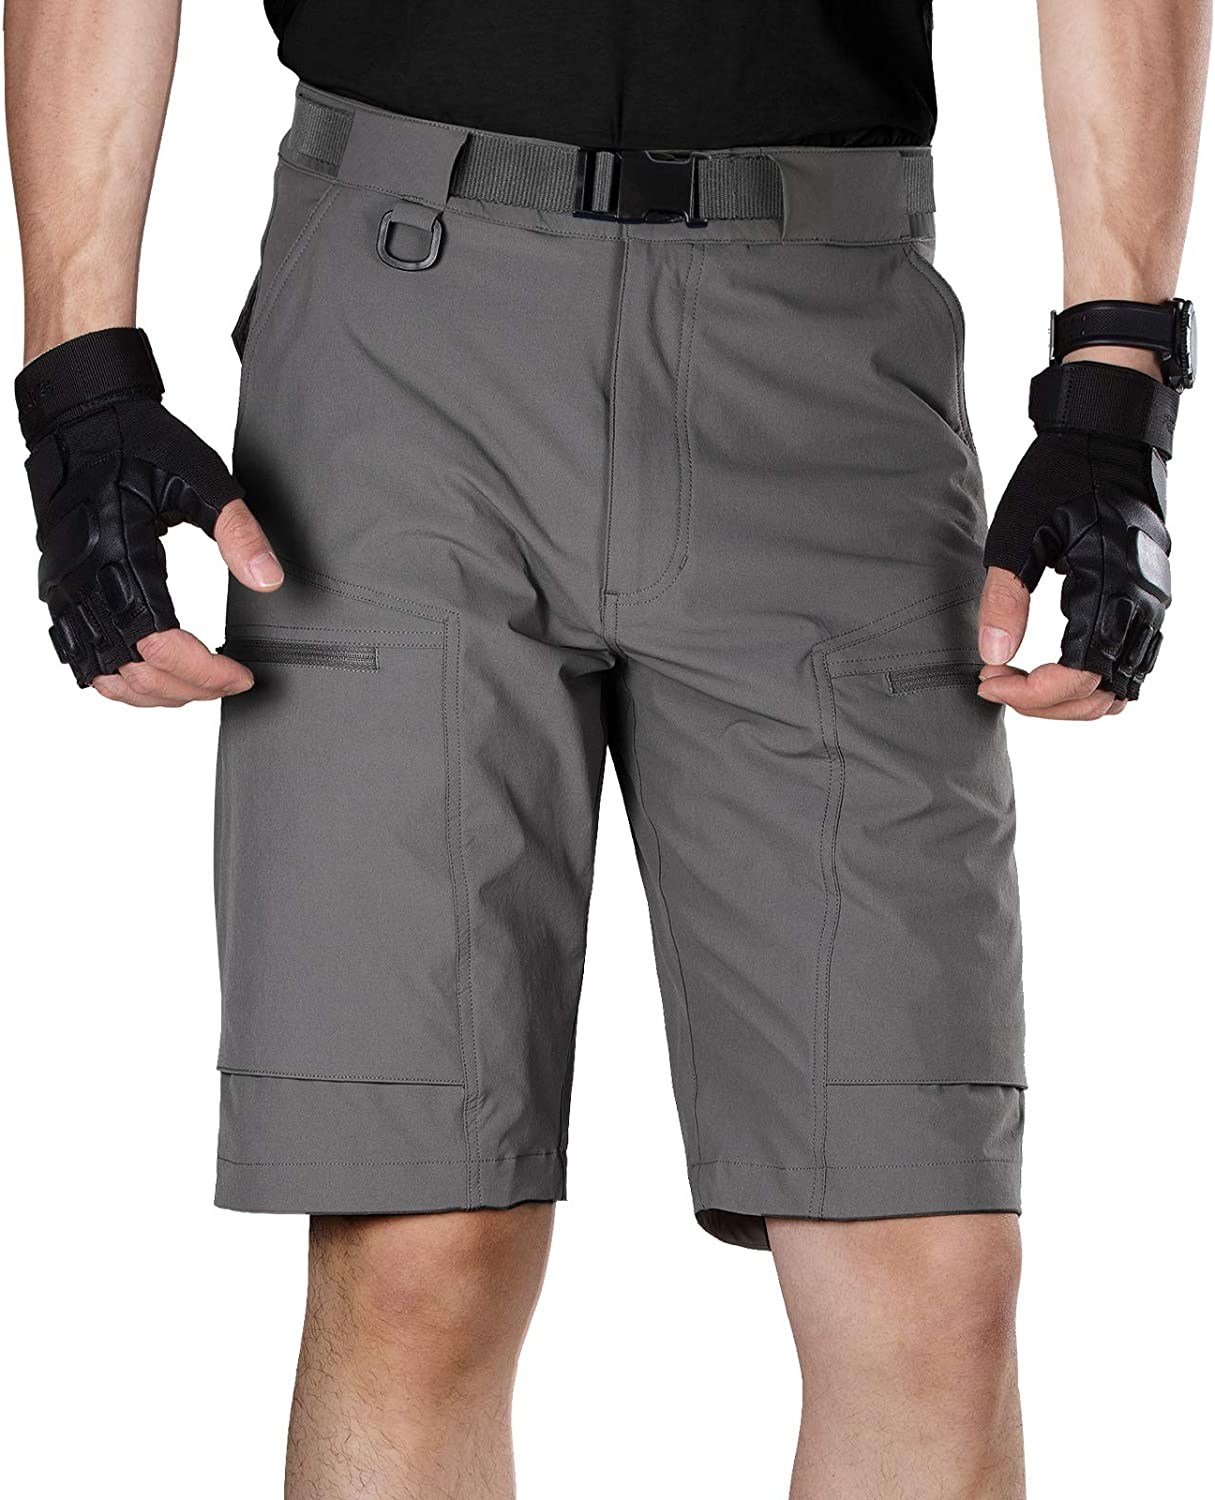 FREE SOLDIER Men's Cargo Shorts with Belt Lightweight Breathable Quick Dry Hiking Tactical Shorts Nylon Spandex